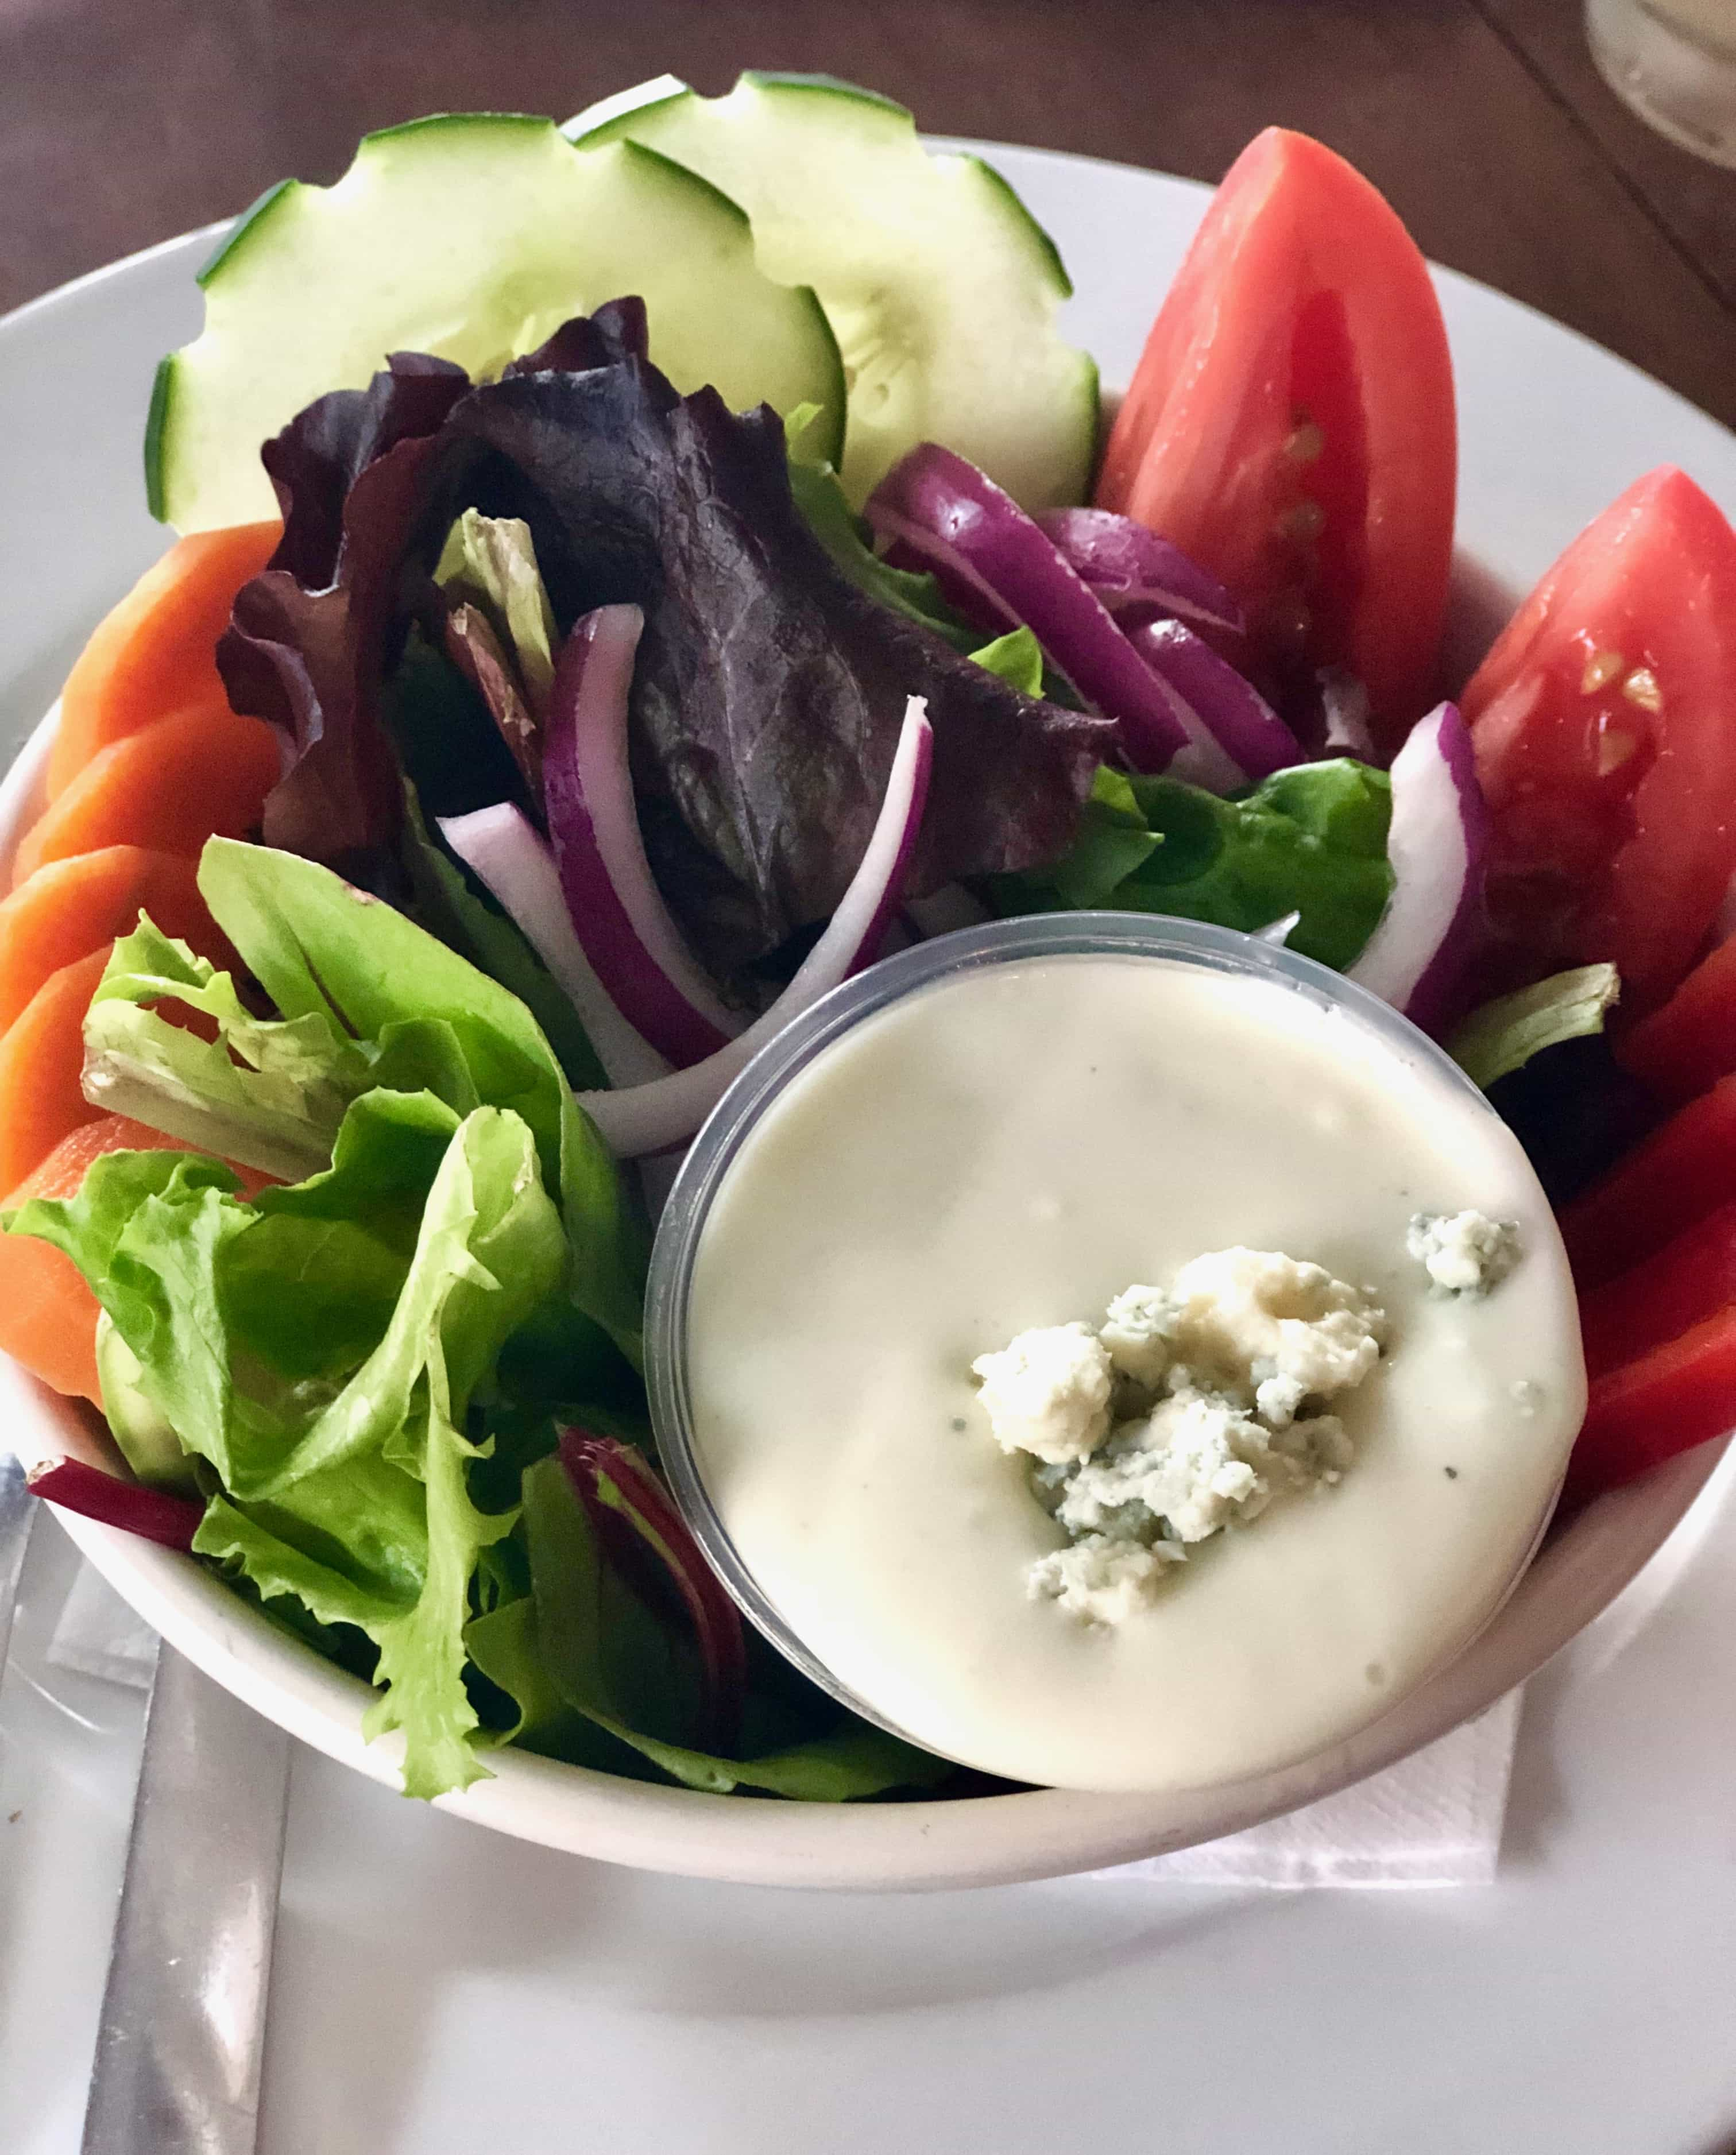 mixed salad with veggies and blue cheese dip in a white bowl